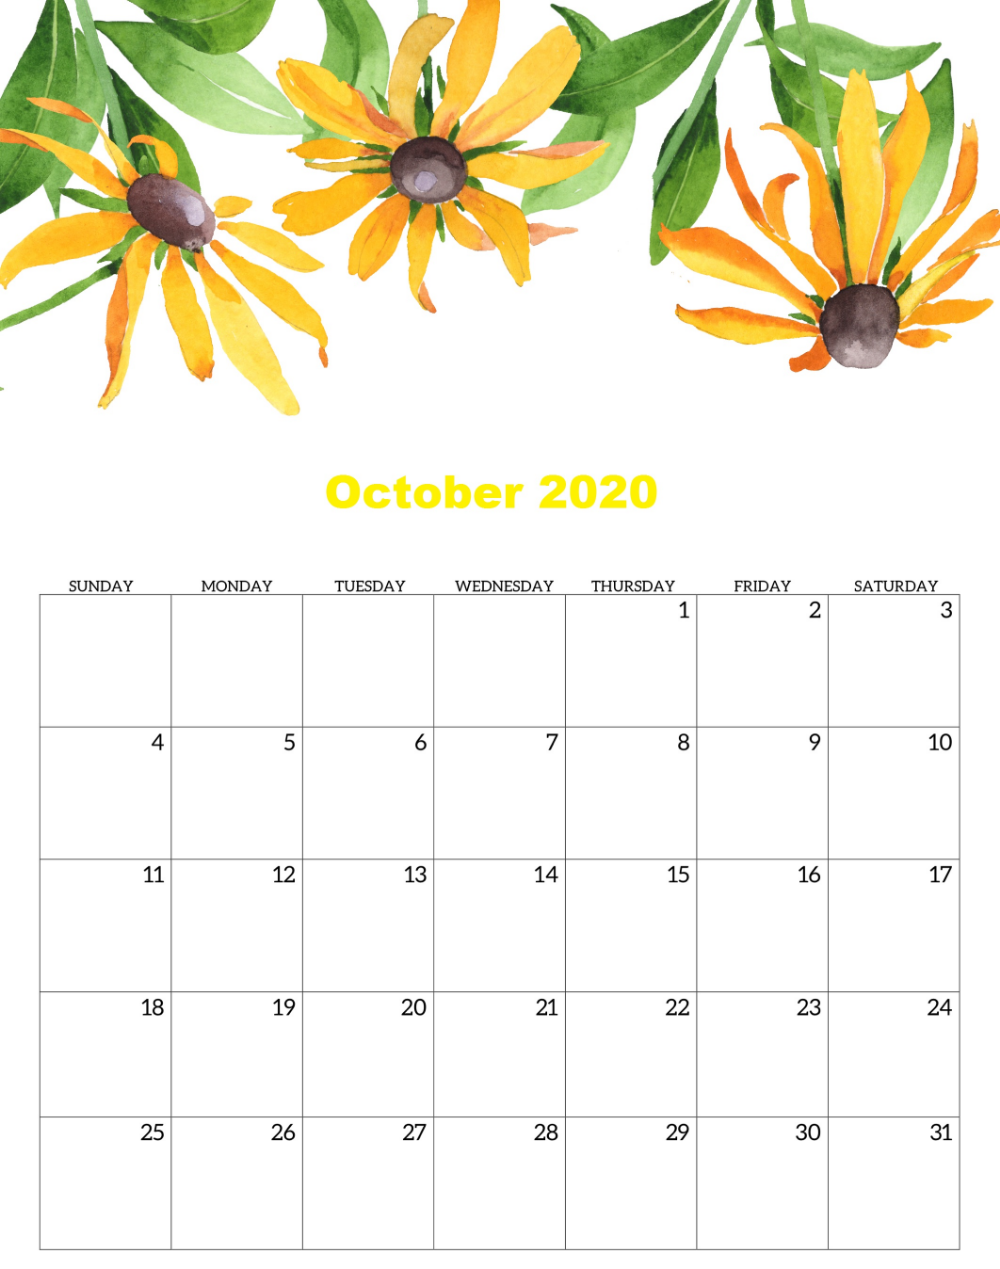 Free Printable October 2020 Calendar Cute 2020 October 2020 In 2020 Printable Calendar Template Calendar Design Template Calendar Template